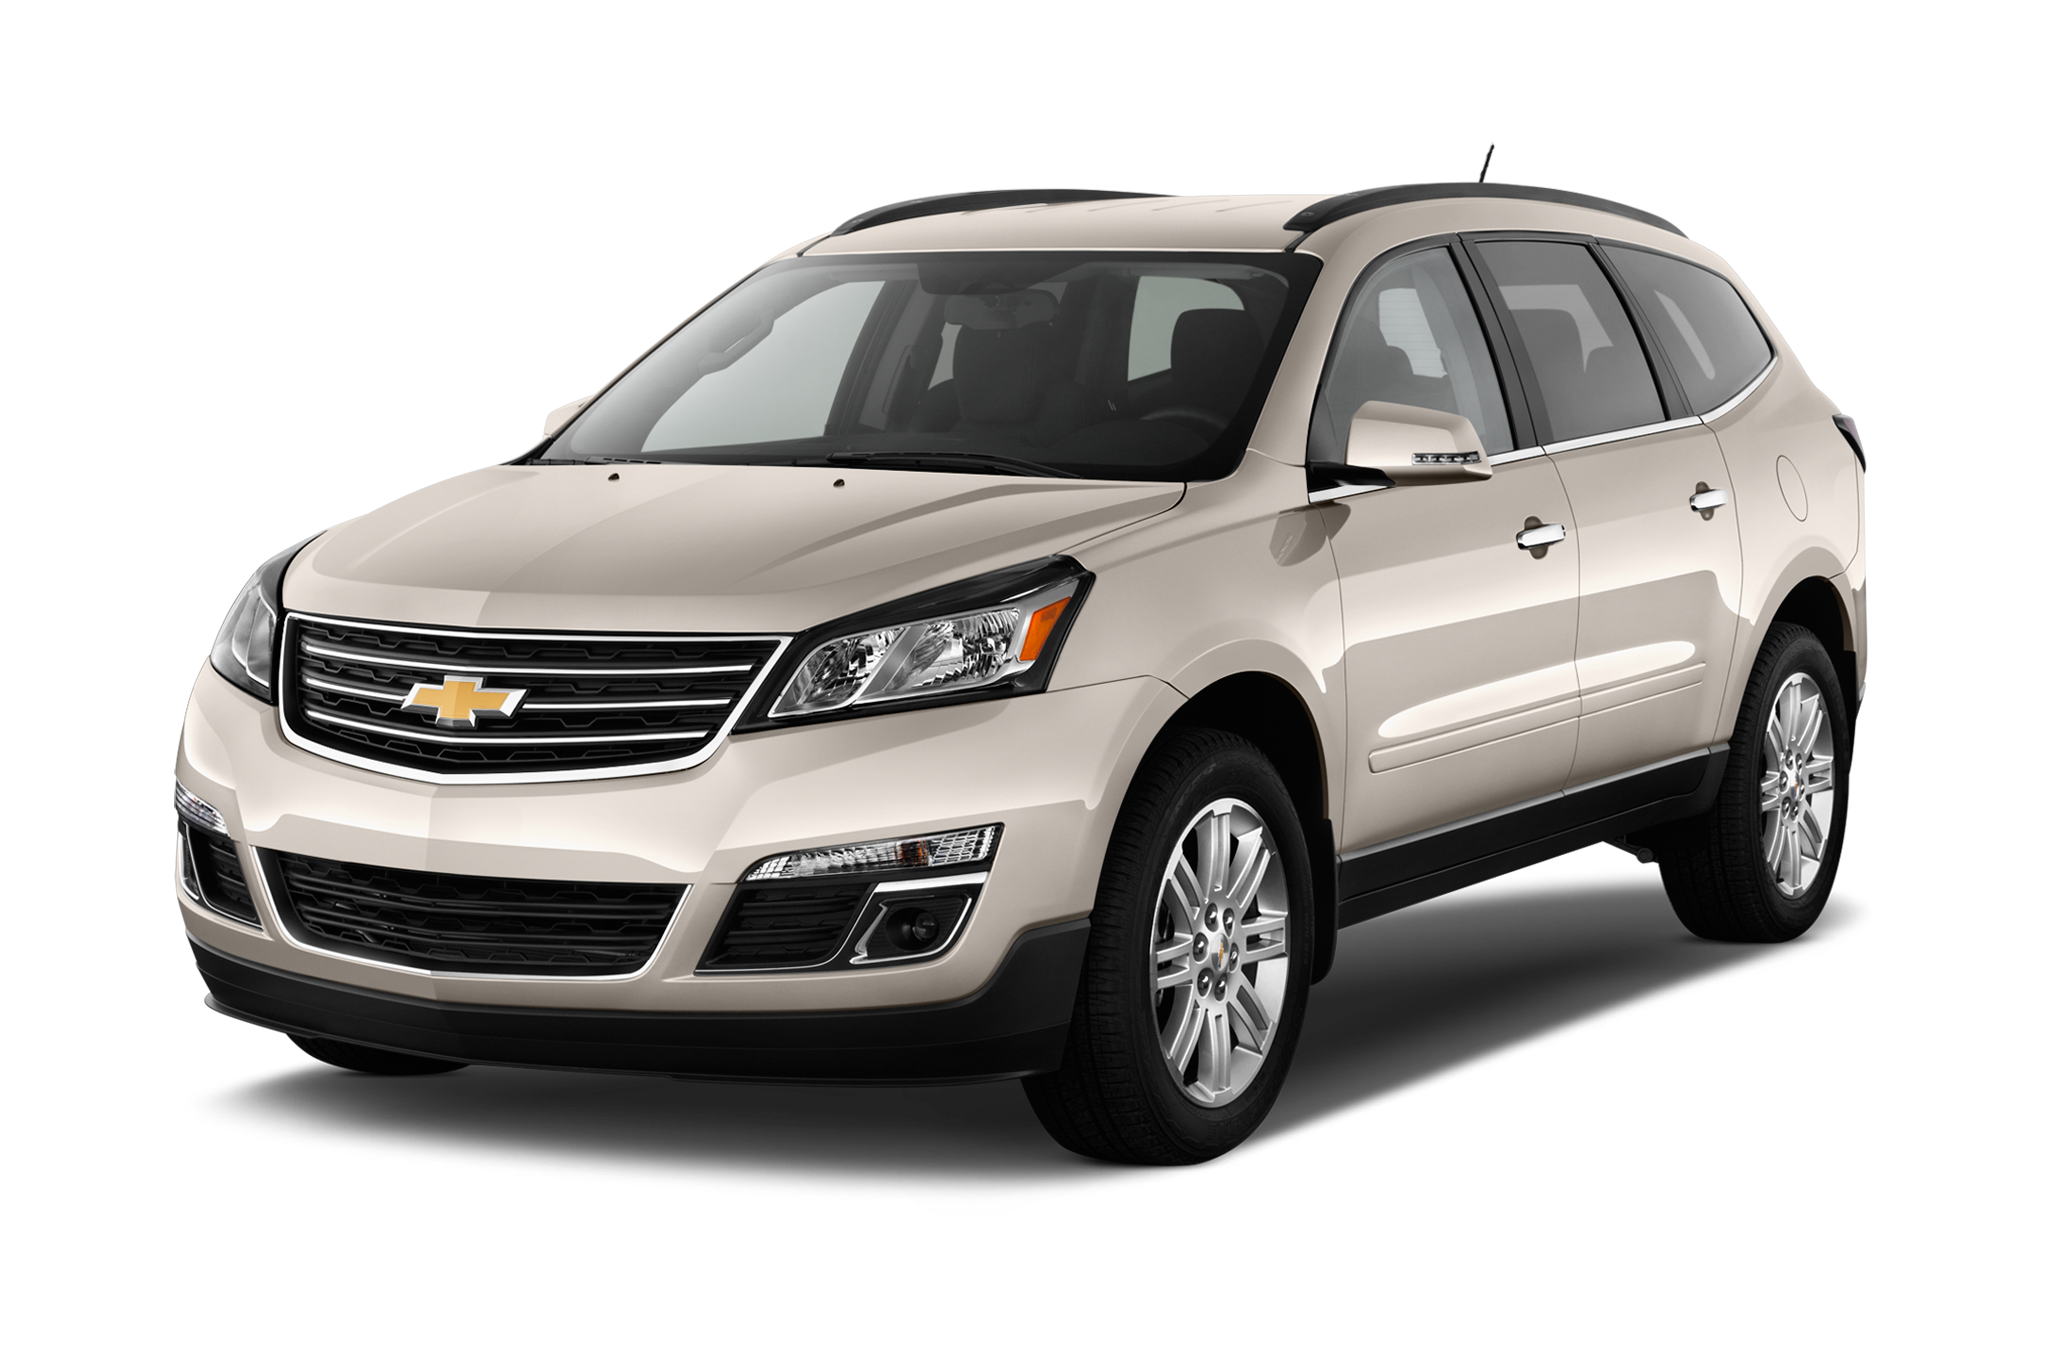 new 2018 chevrolet traverse teased will debut in detroit automobile magazine. Black Bedroom Furniture Sets. Home Design Ideas